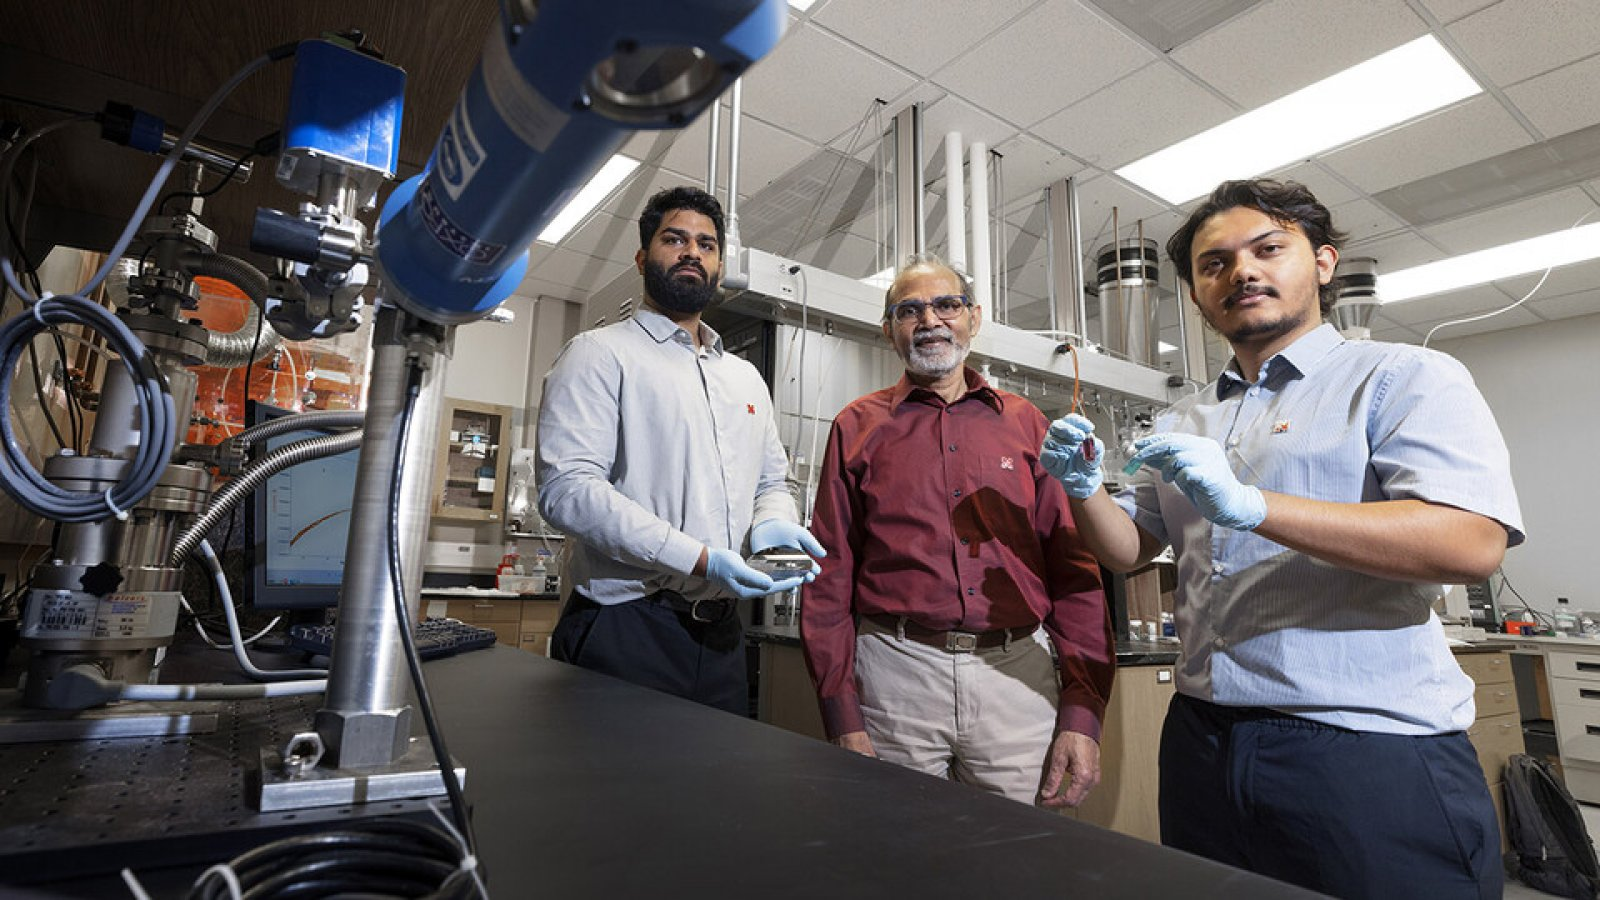 Abhijeet Prasad (left), a doctoral student in engineering; Ravi Saraf (center), Anderson Distinguished Professor of chemical and biomolecular engineering; and Aashish Subedi, a senior physics major, are photographed in Saraf's Othmer Hall lab. Prasad is holding small electronic chips used to study the nanoparticle necklace network devices. Subedi is holding a suspension of nanoparticle necklaces (blue container) made from individual particles (red container). (Craig Chandler / University Communication)